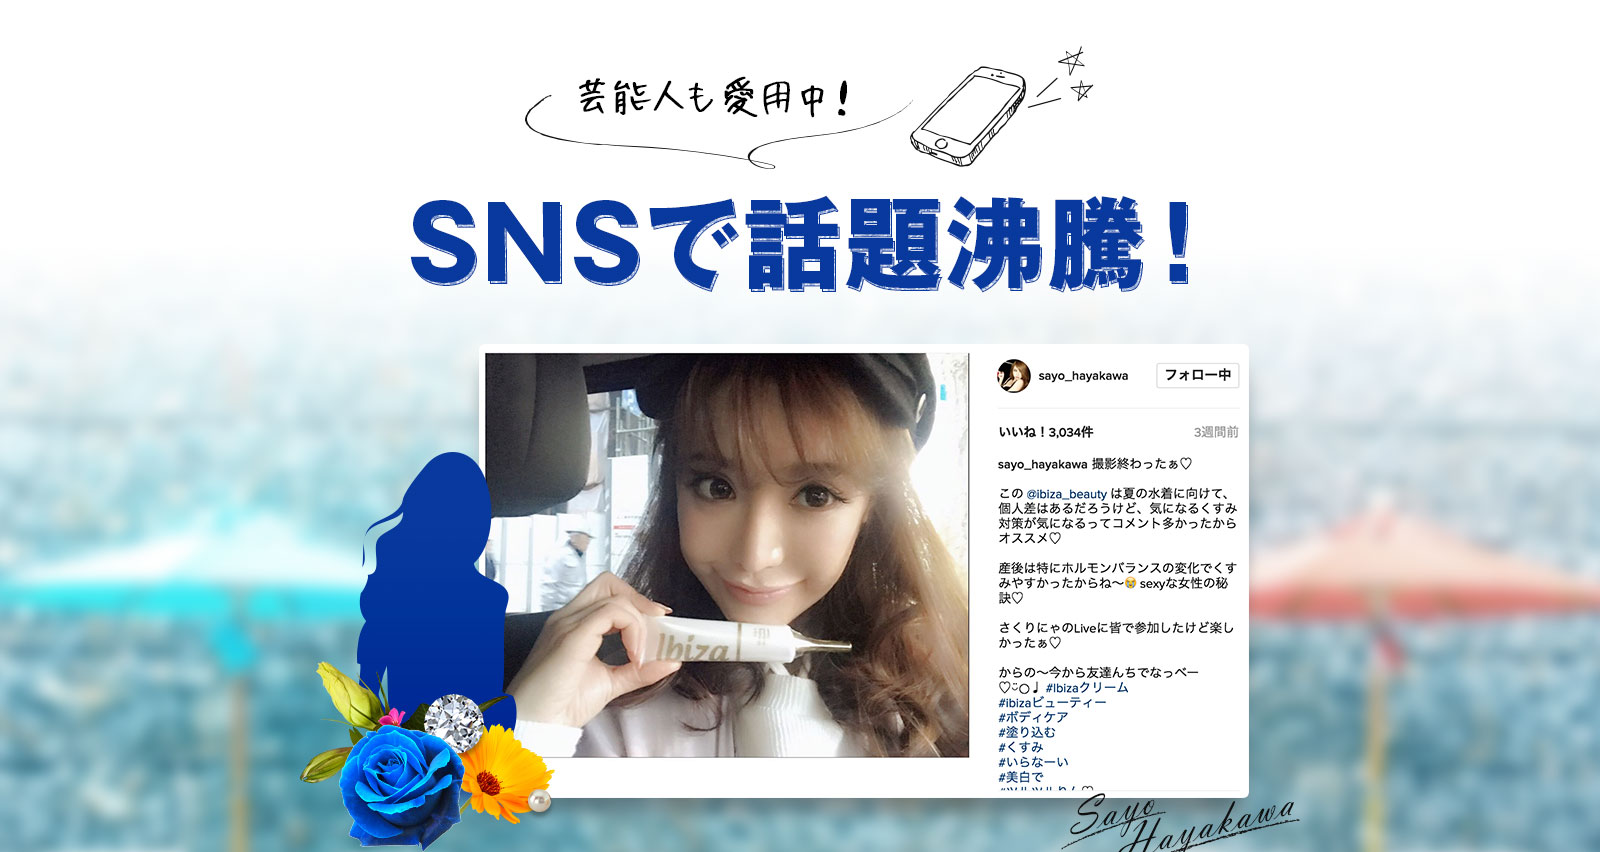 SNSで話題沸騰